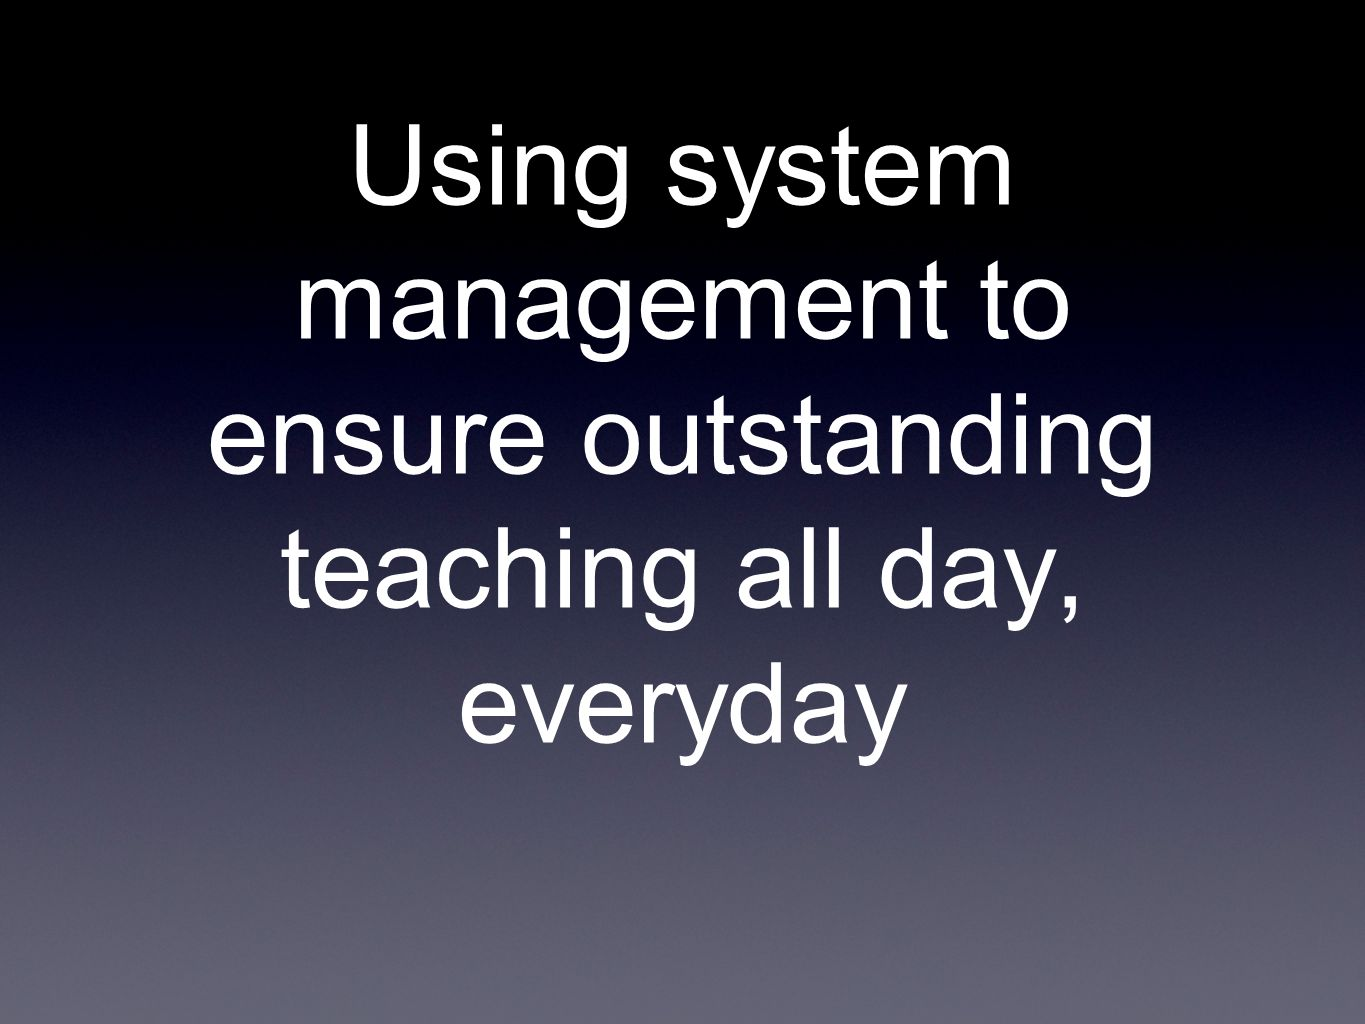 Using system management to ensure outstanding teaching all day, everyday